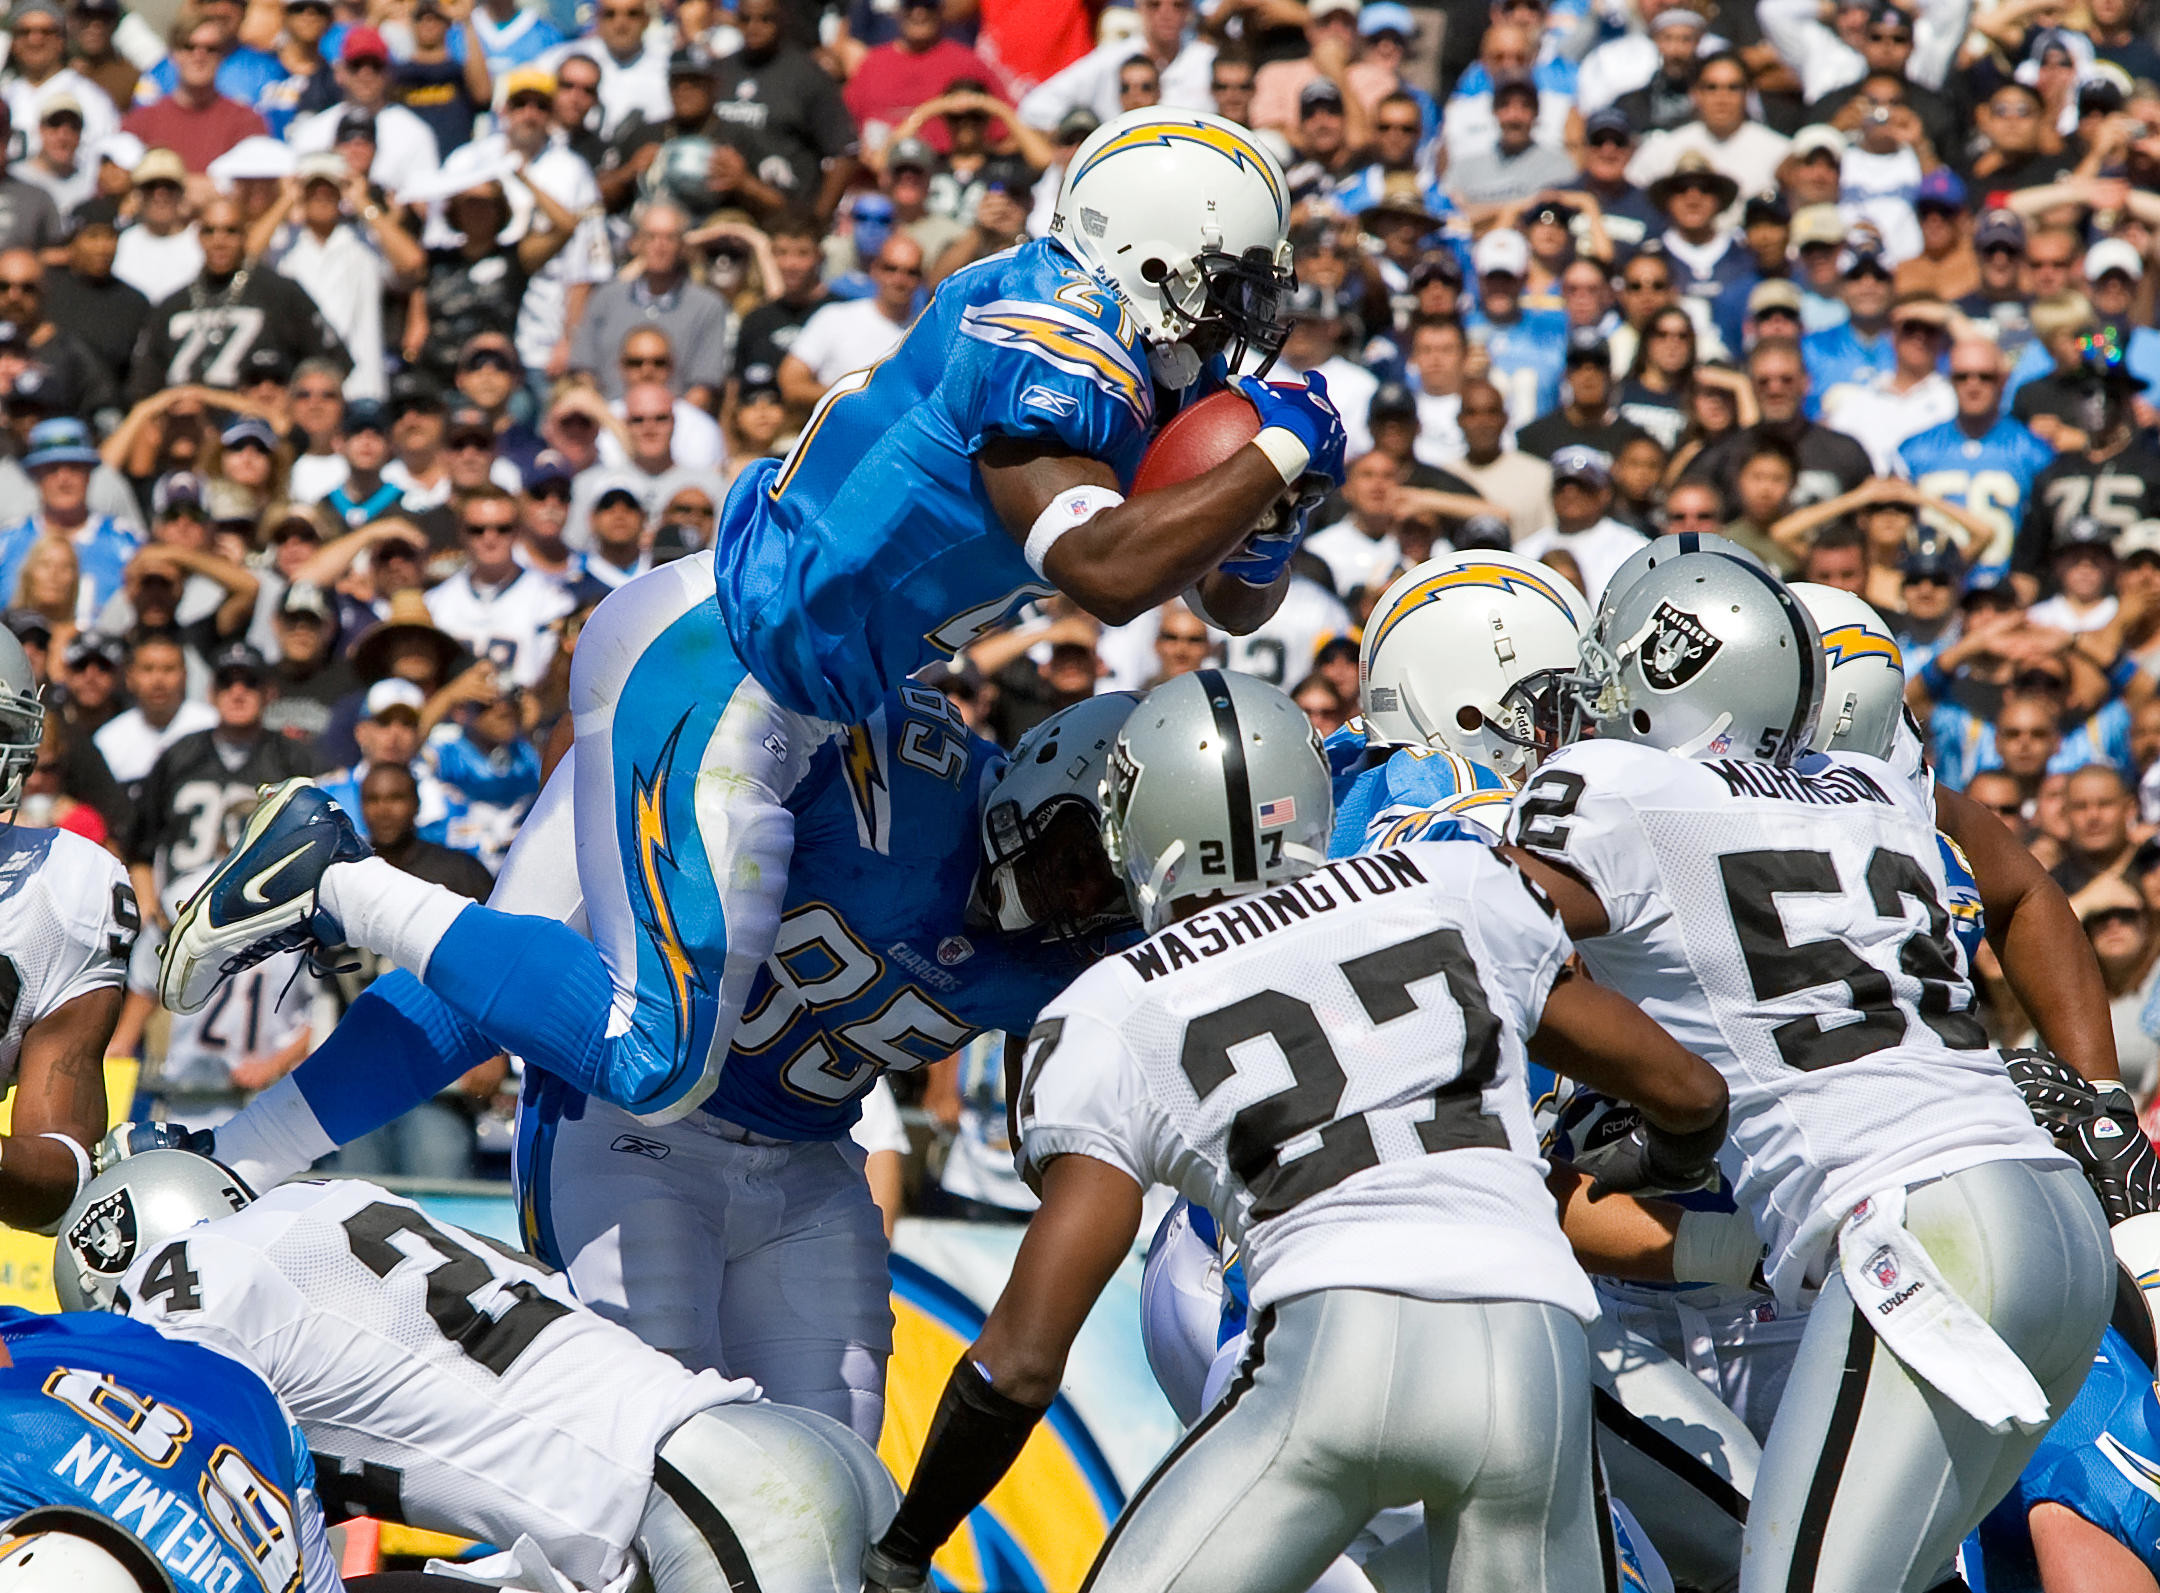 2160x1593 The Nominees for Top LaDainian Tomlinson Photo are... | Los Angeles Chargers